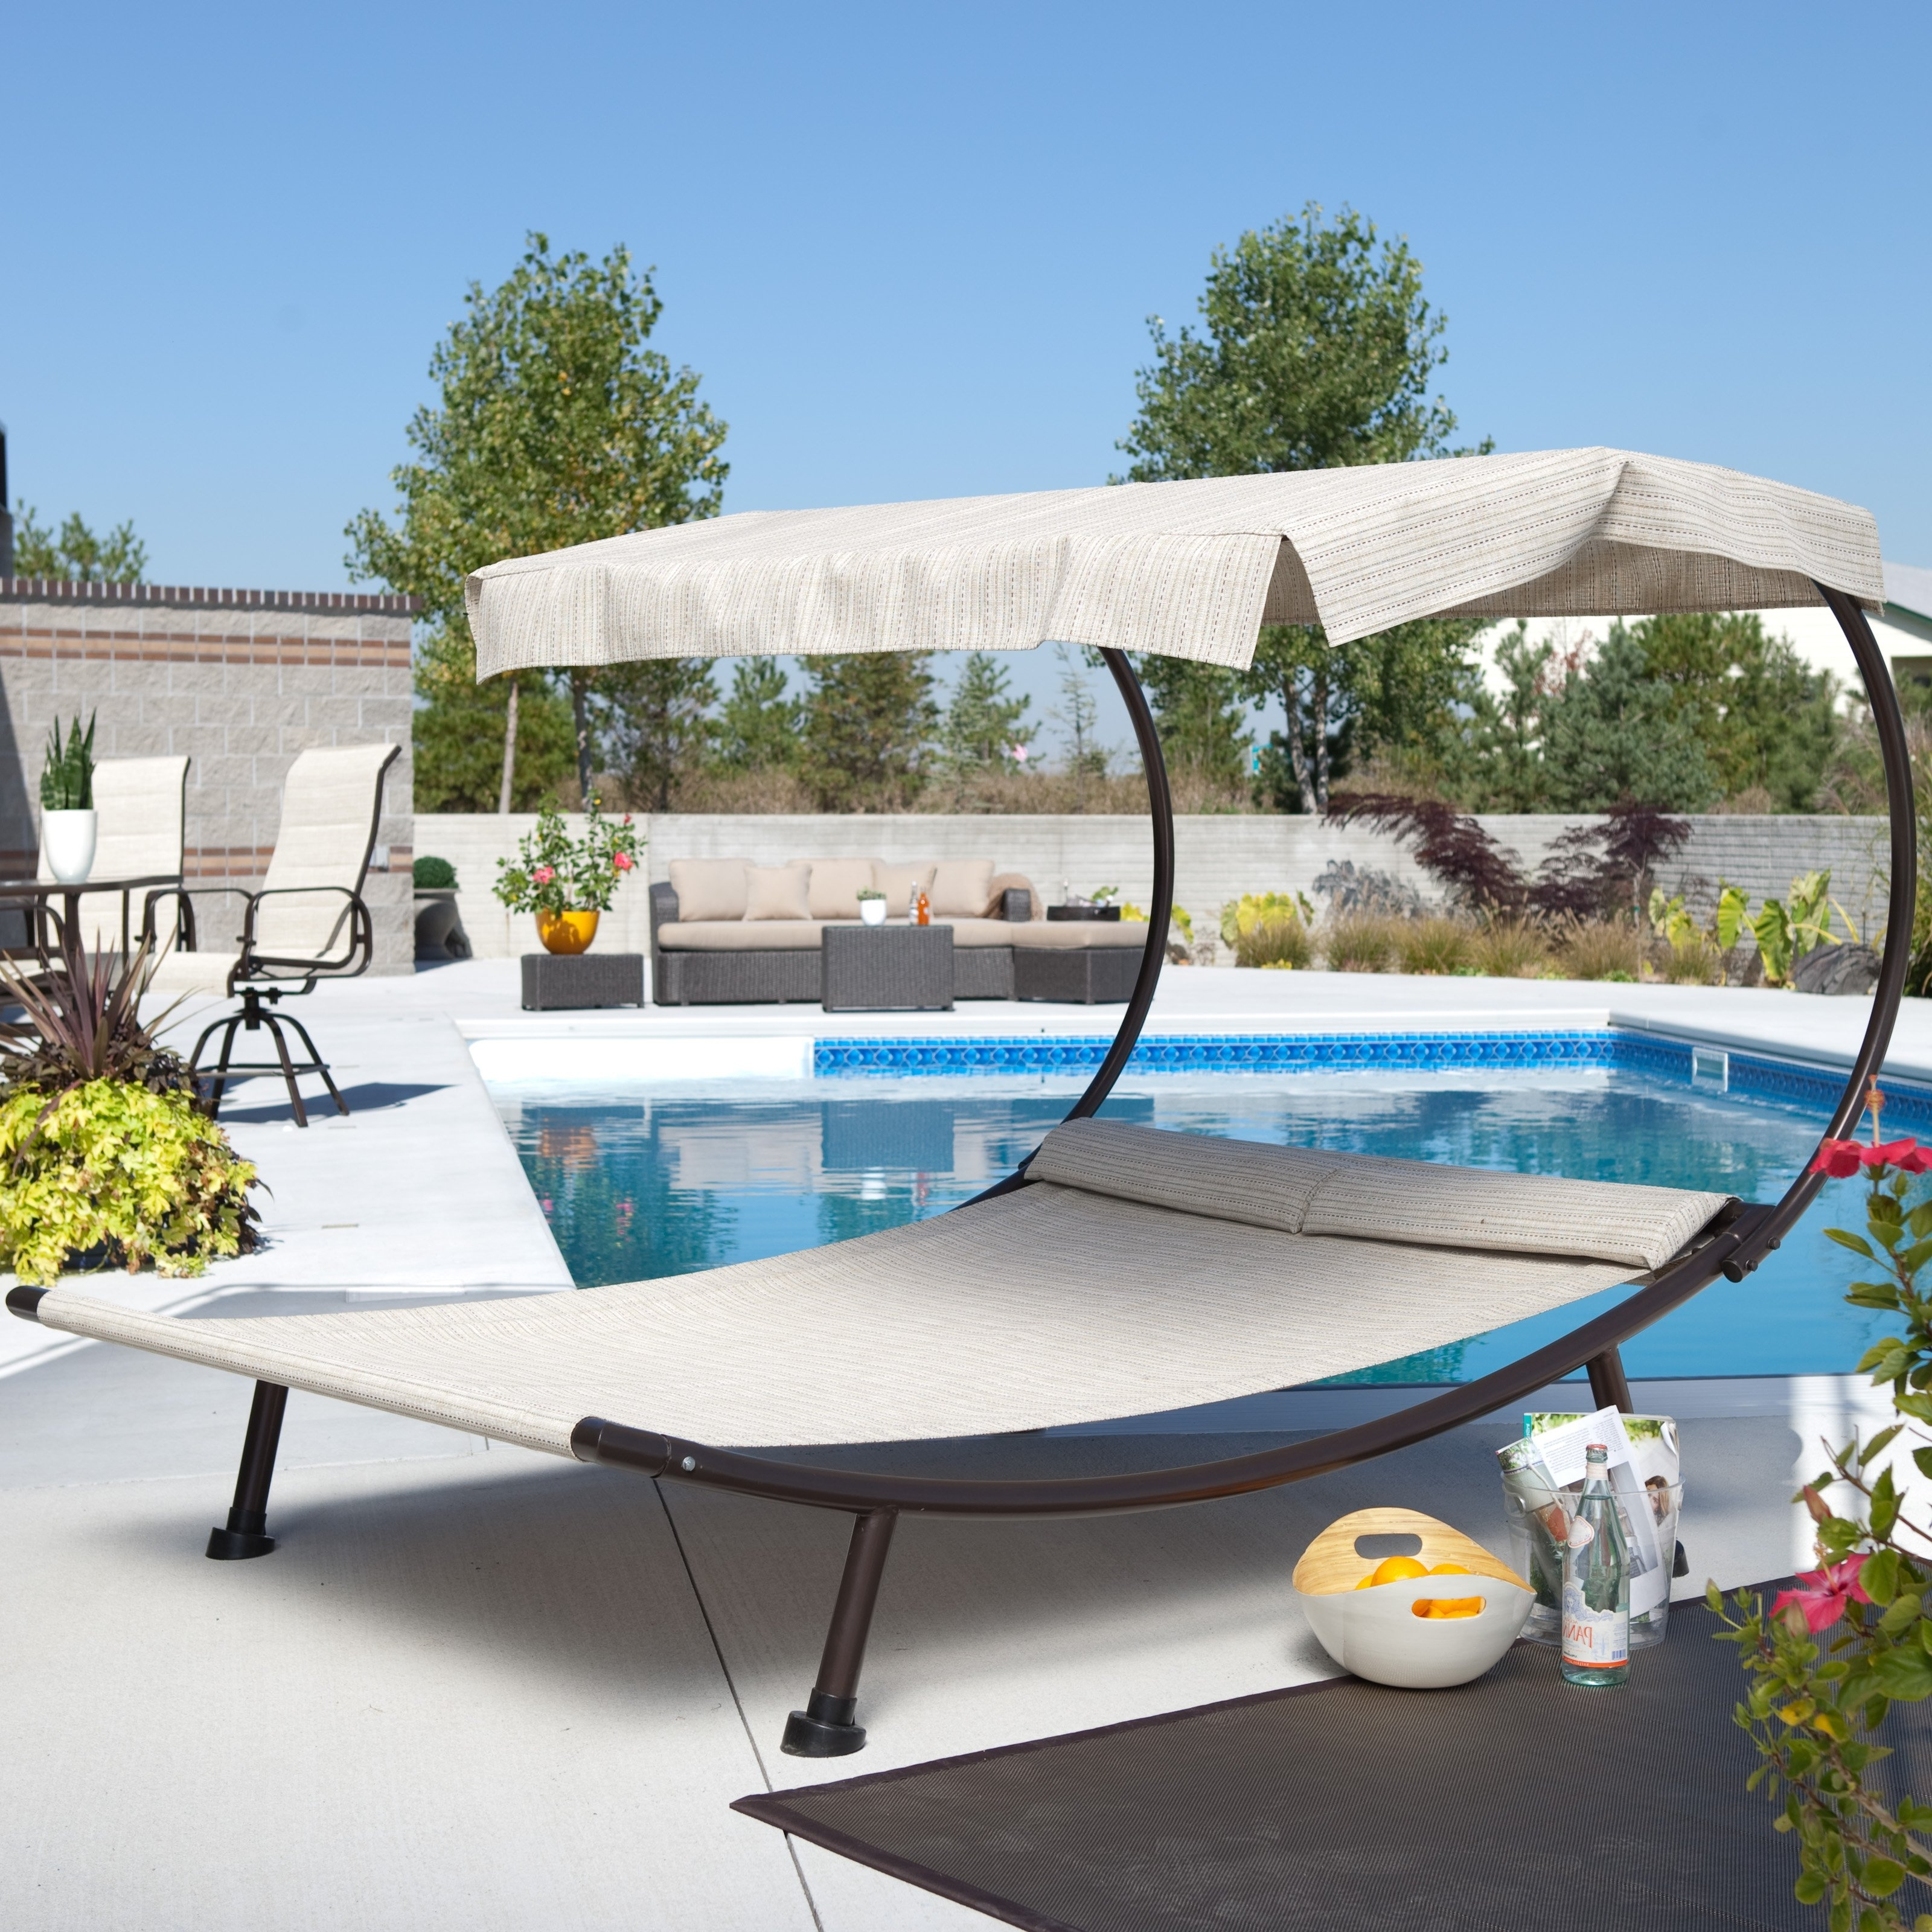 Most Recent Chaise Outdoor Lounge Chairs Throughout Coral Coast Del Rey Double Chaise Lounge With Canopy (View 13 of 15)